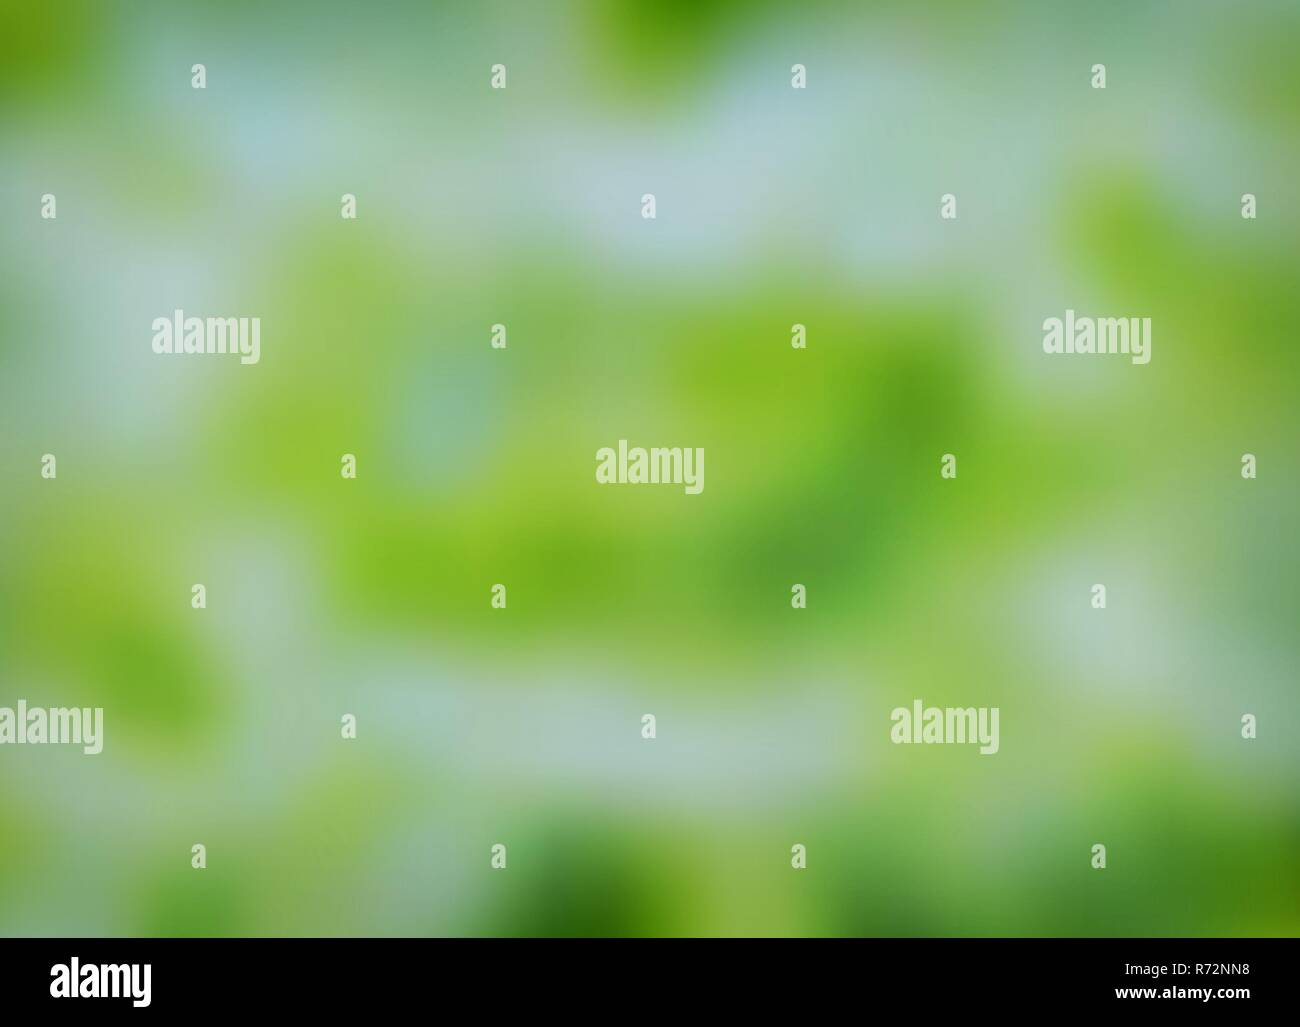 Abstract Green Blurred Background Nature Gradient Backdrop